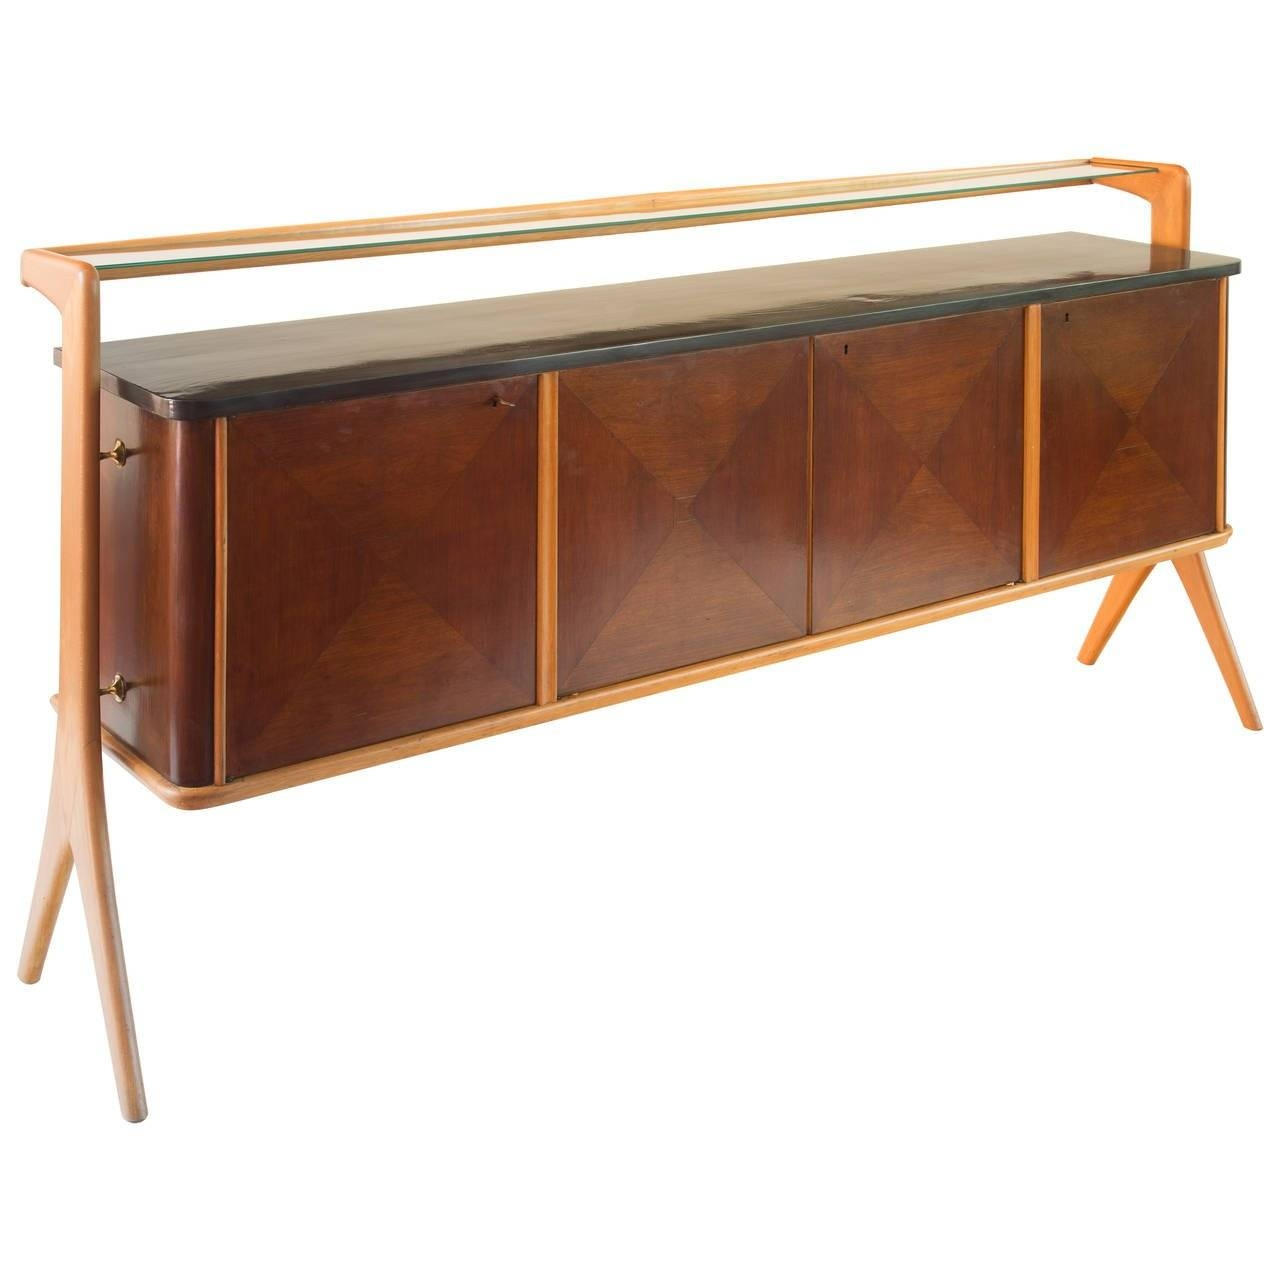 Vittorio Dassi Sideboard, Four Doors, 1940 For Sale At 1Stdibs With Regard To Sideboard Sale (#20 of 20)